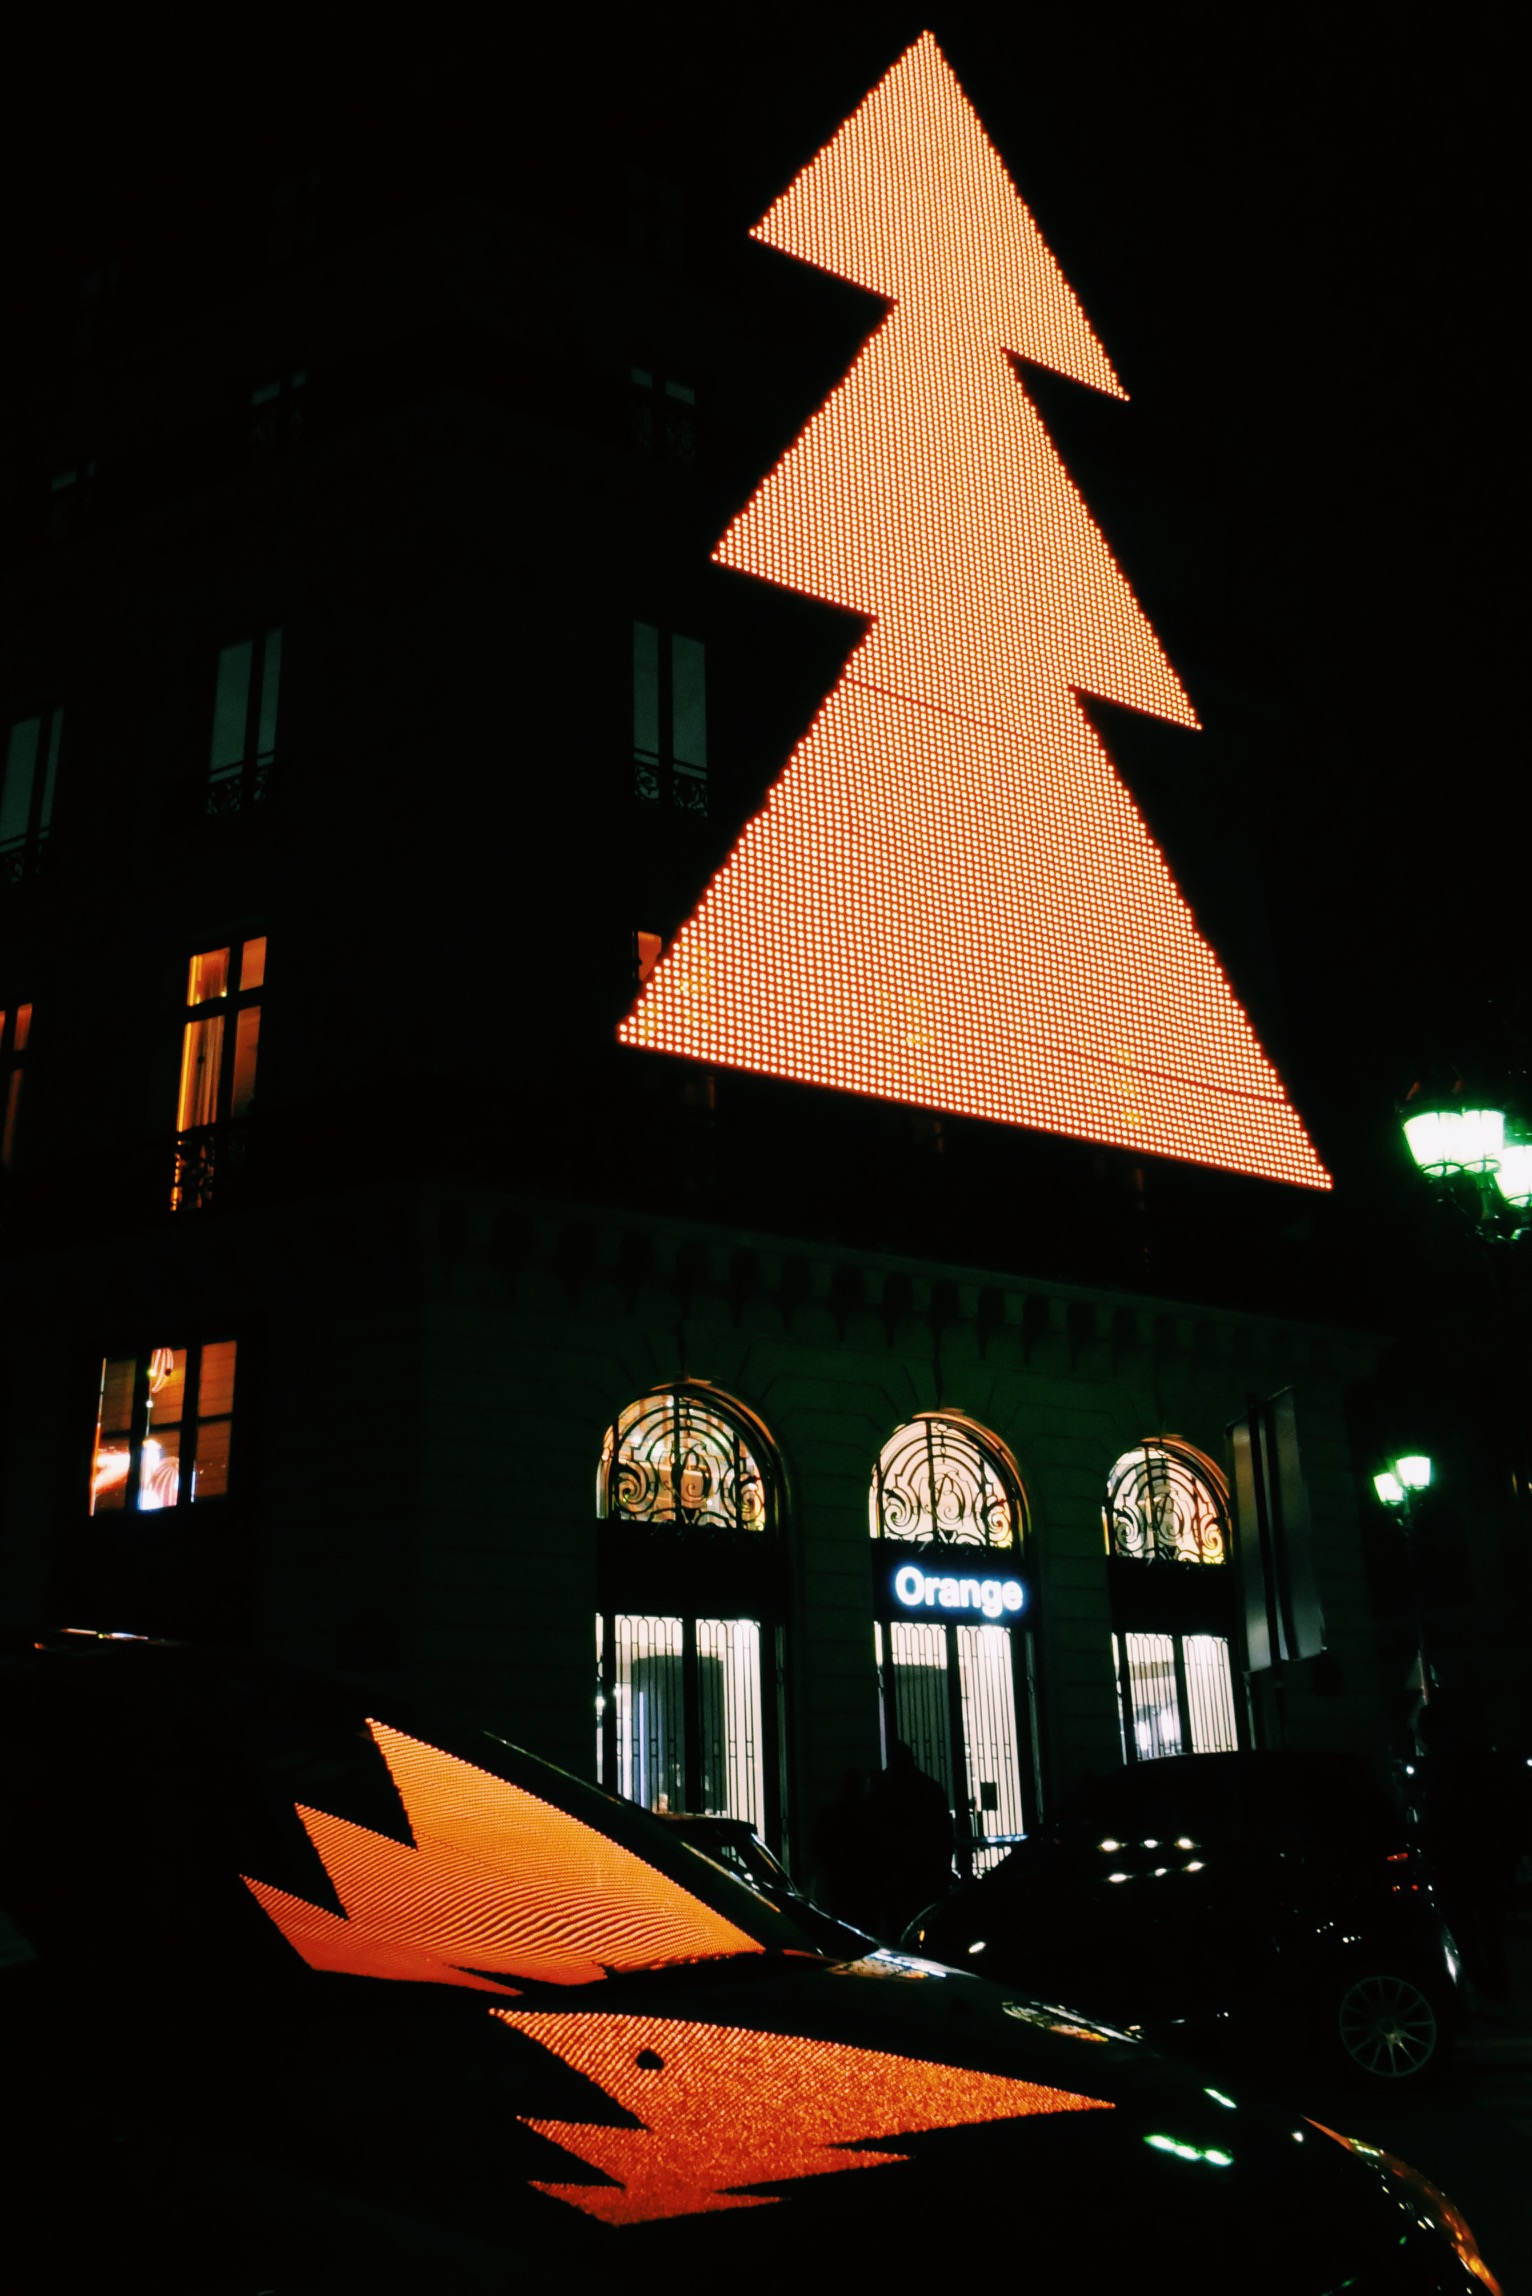 Orange-Opéra-nouvelle-boutique-concept-store-paris-arbre-noël-néon-façade-nuit-photo-usofparis-blog